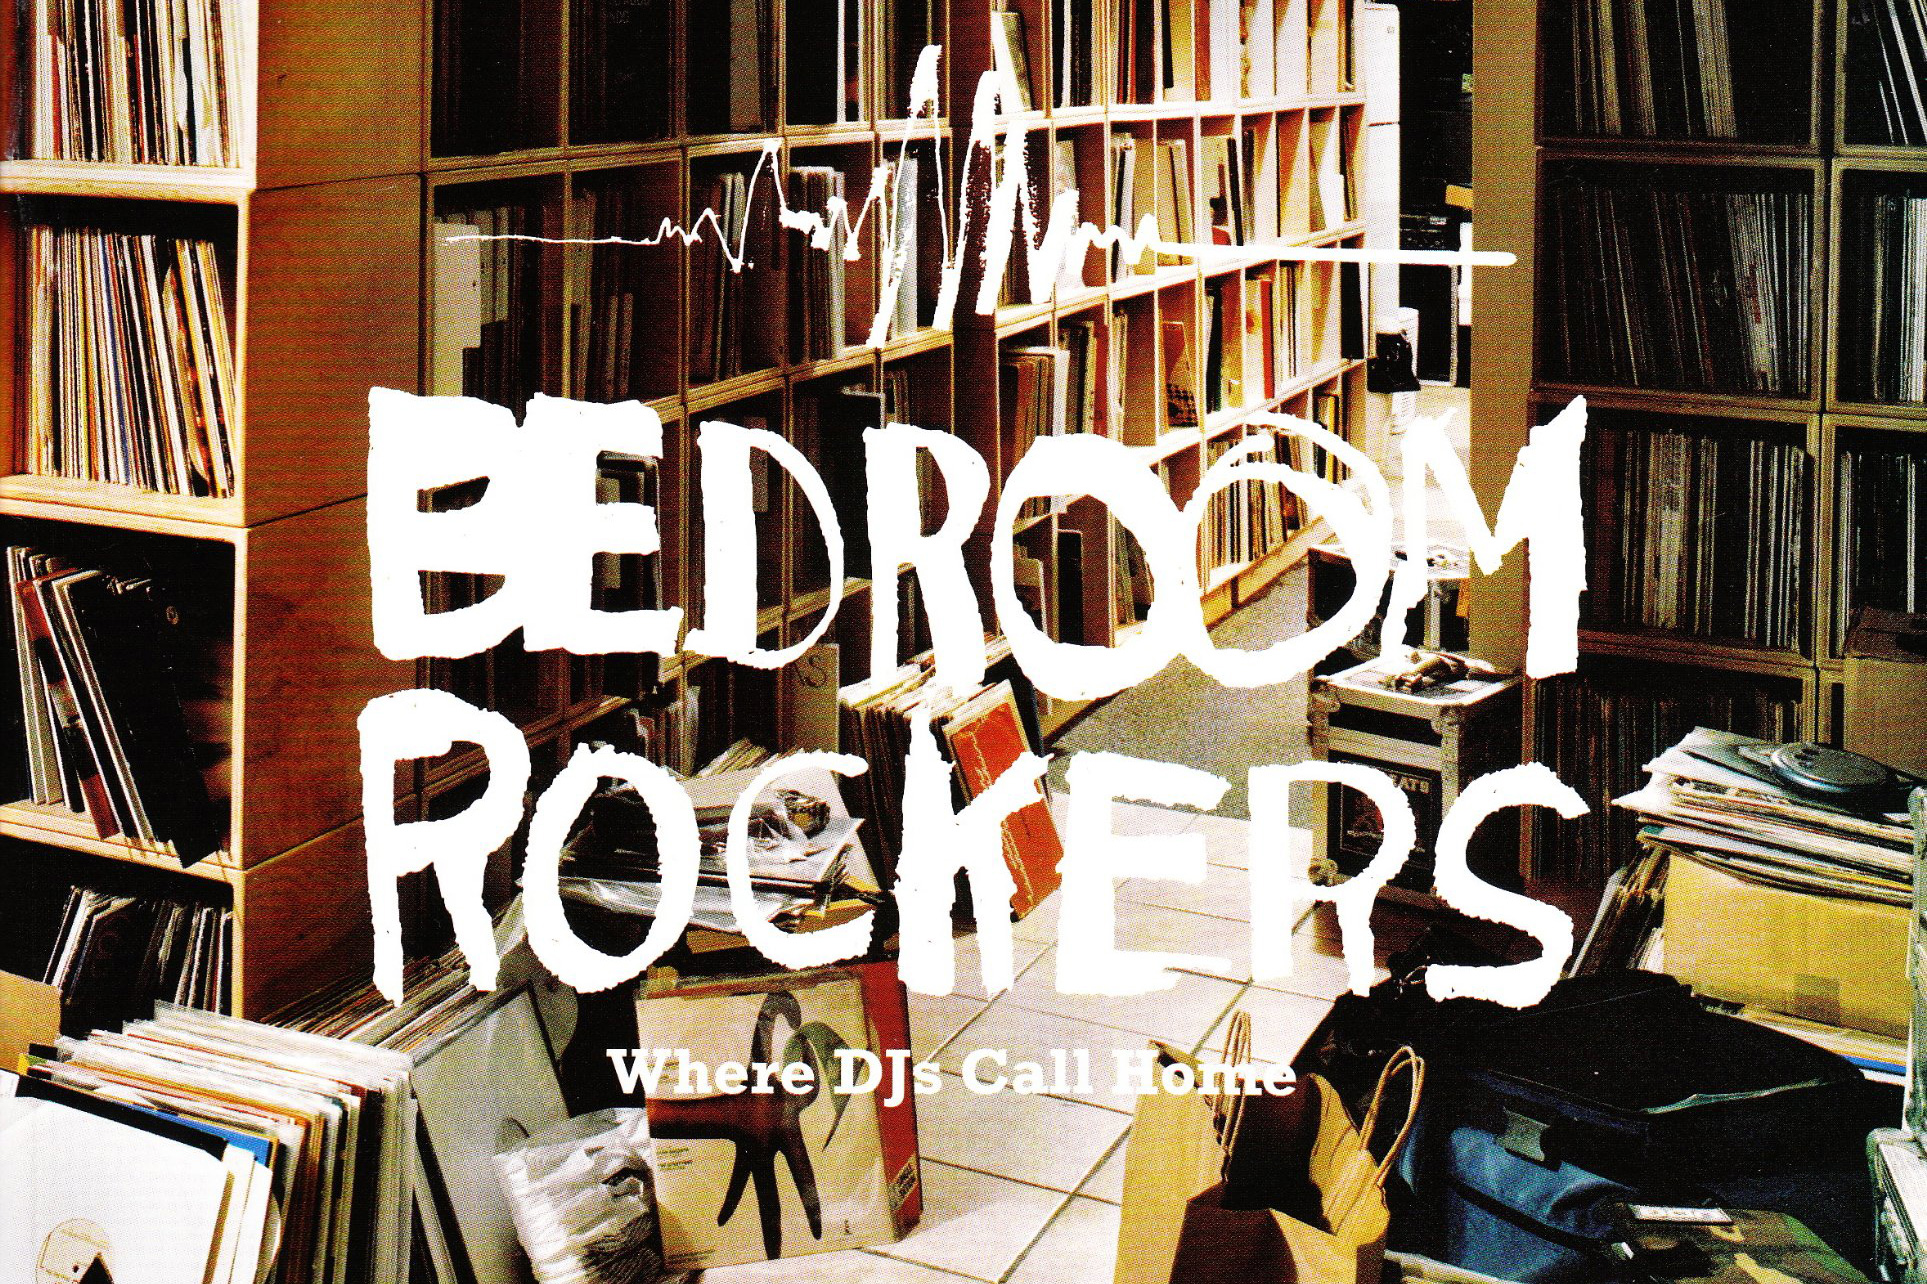 Bedroom Rockers by Christopher Woodcock - book cover